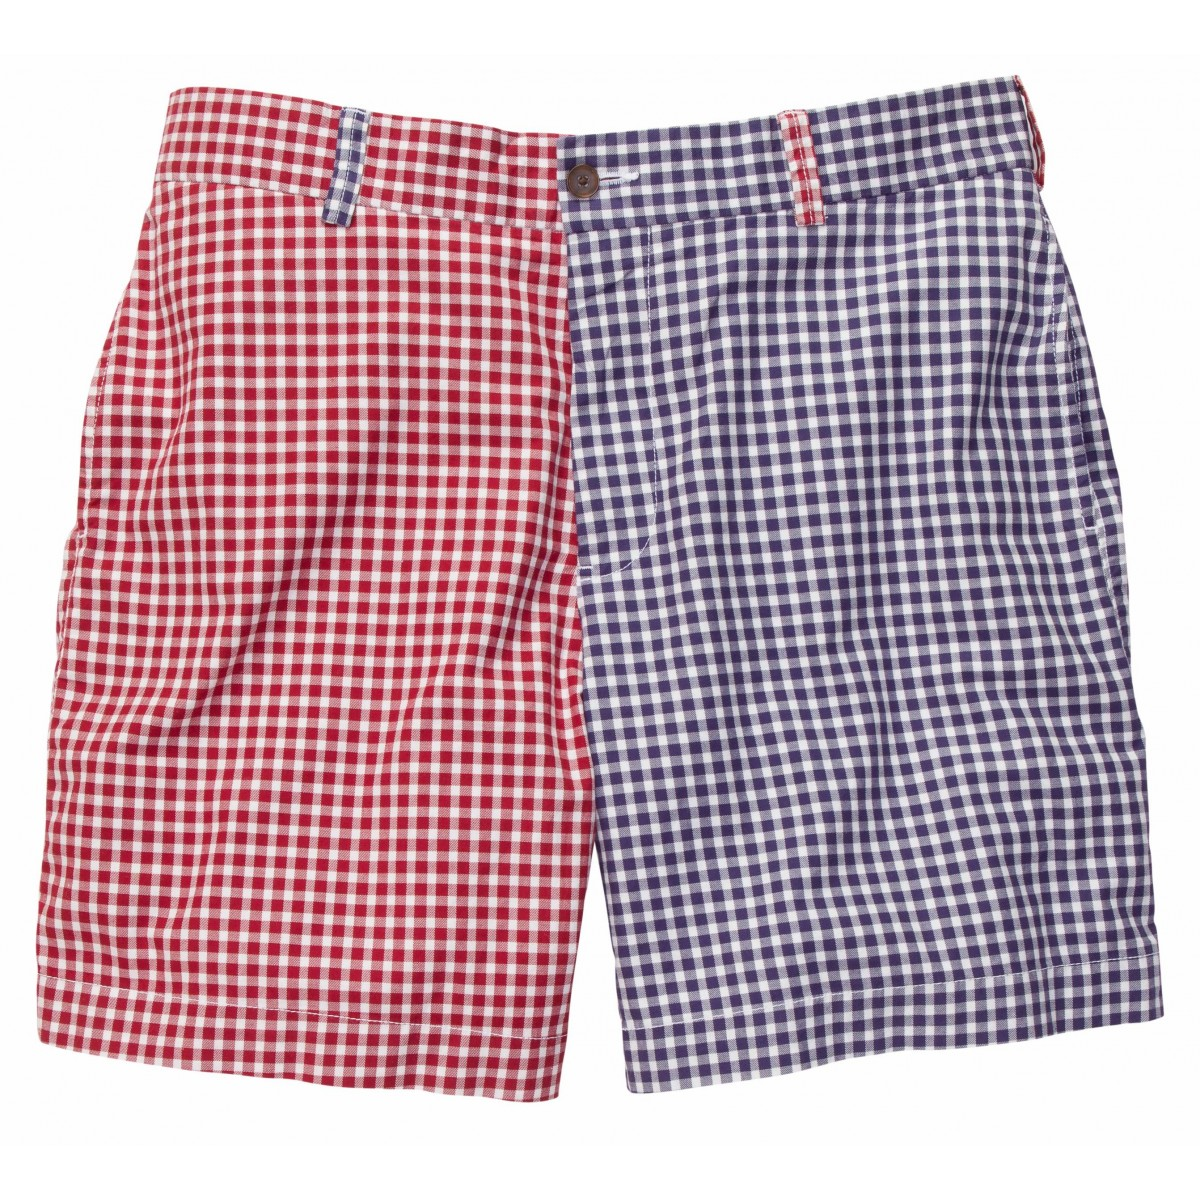 Club Short - Navy/Madras Red Gingham